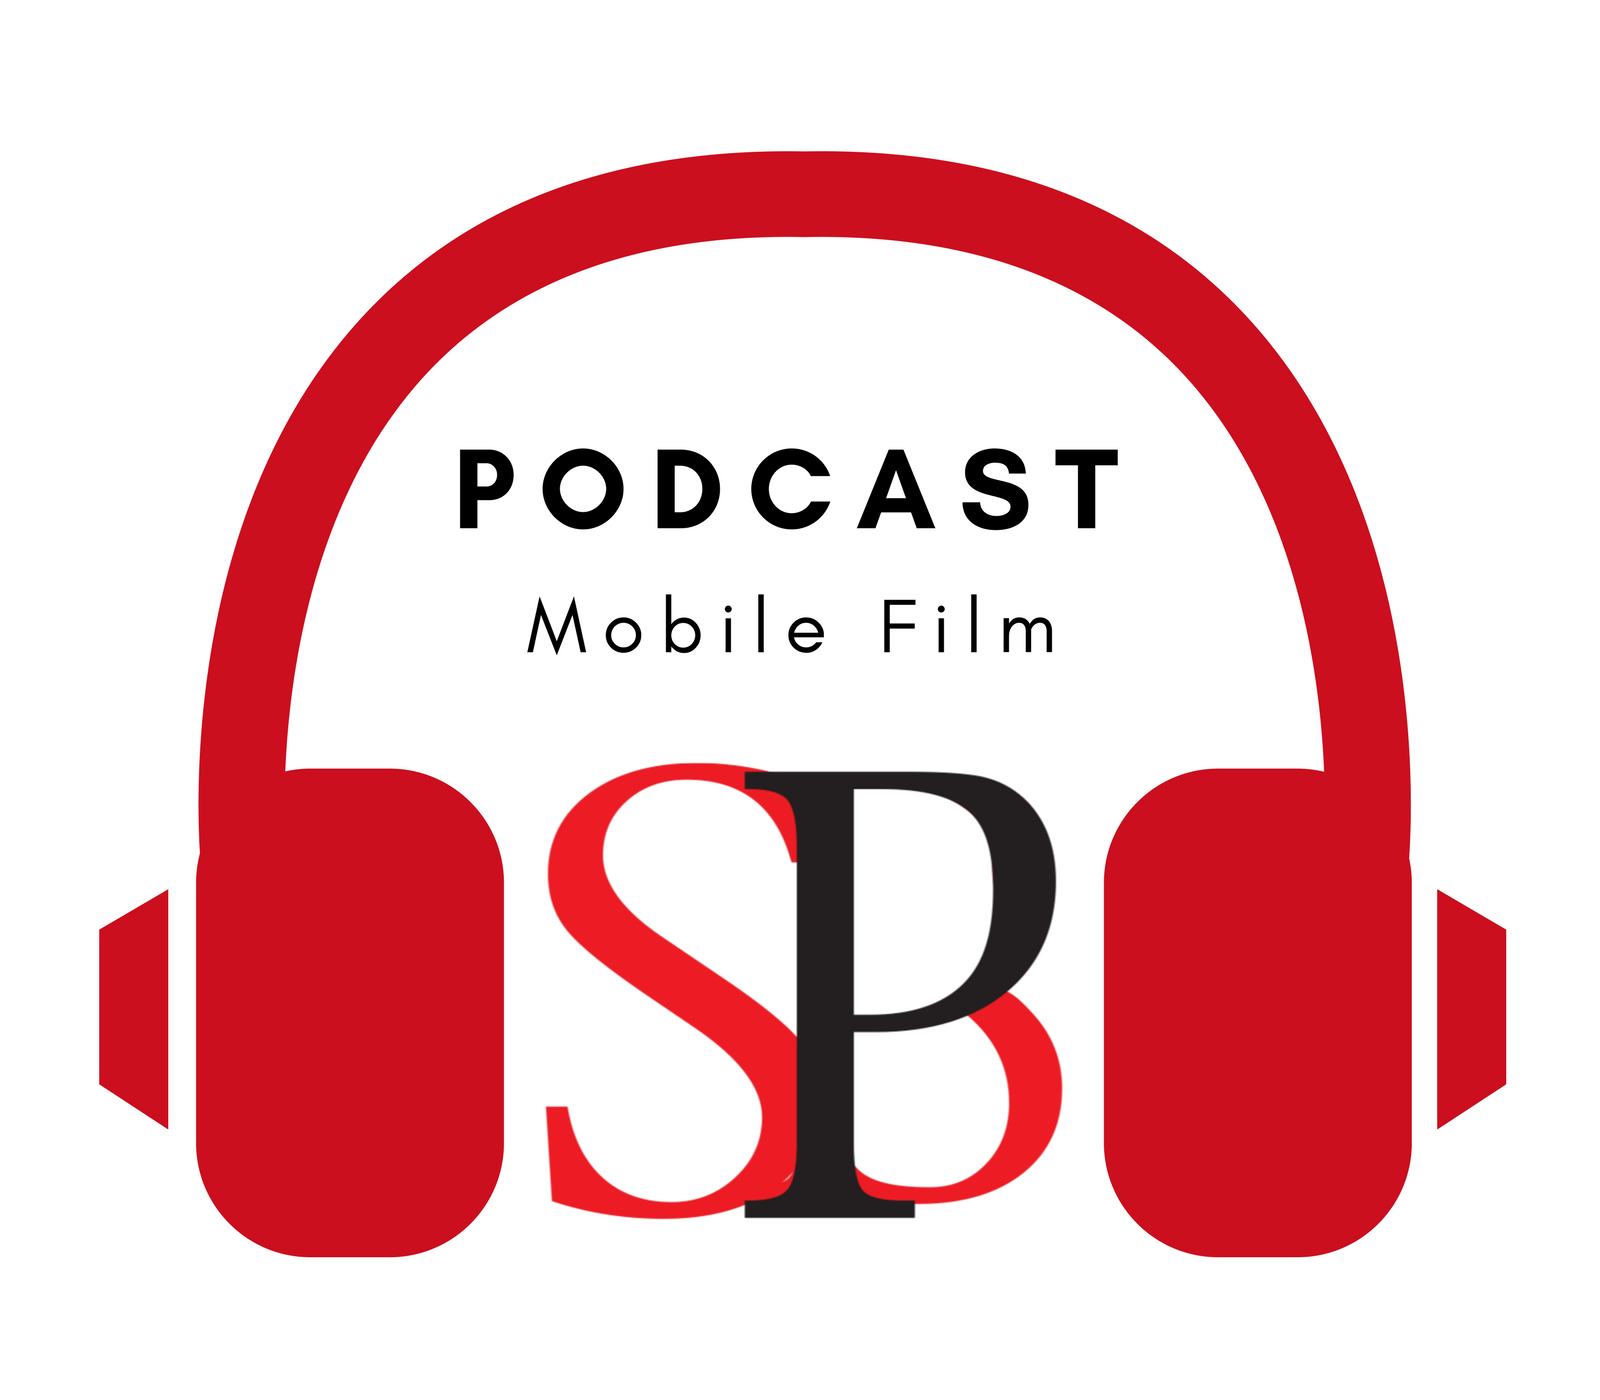 sbp podcast logo white bkgd